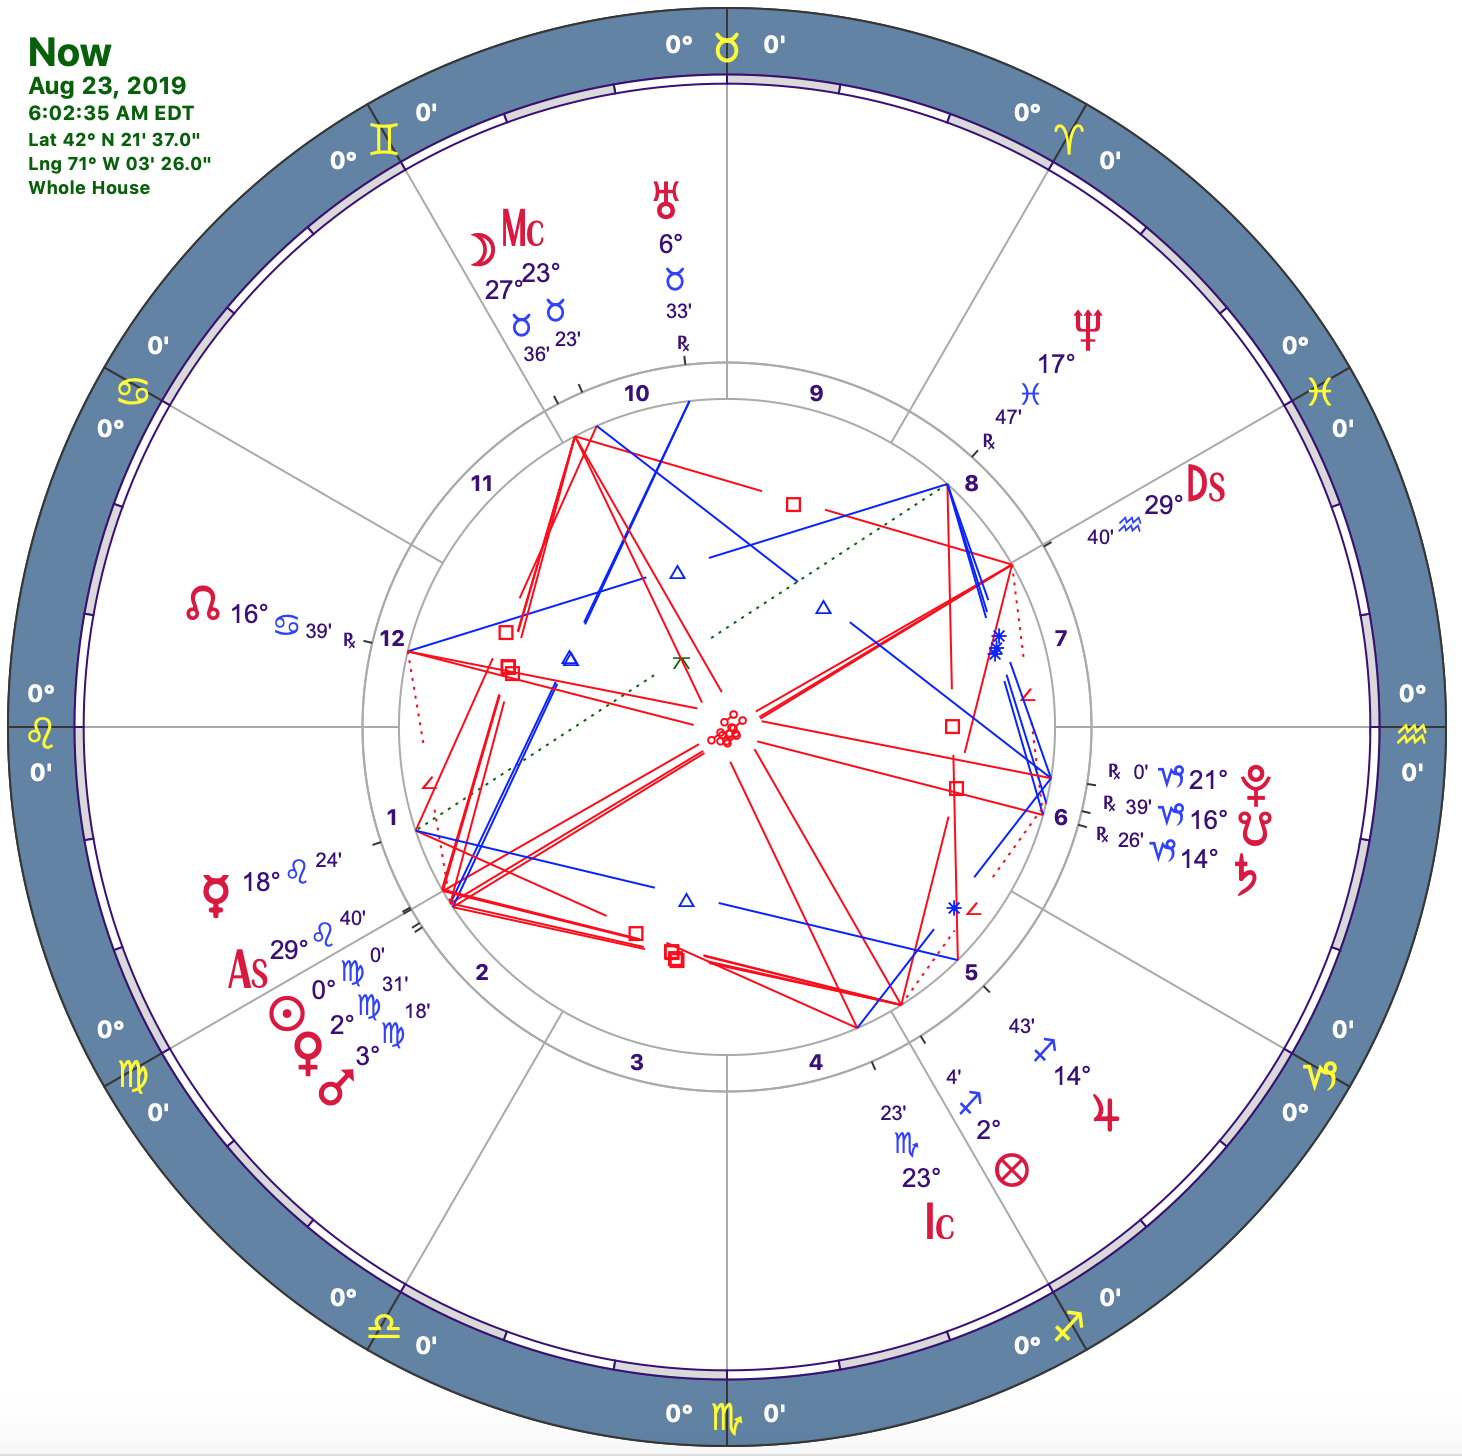 The astrological chart for August 23, 2019, at 6:02 am, for the lat/long of Northampton, MA